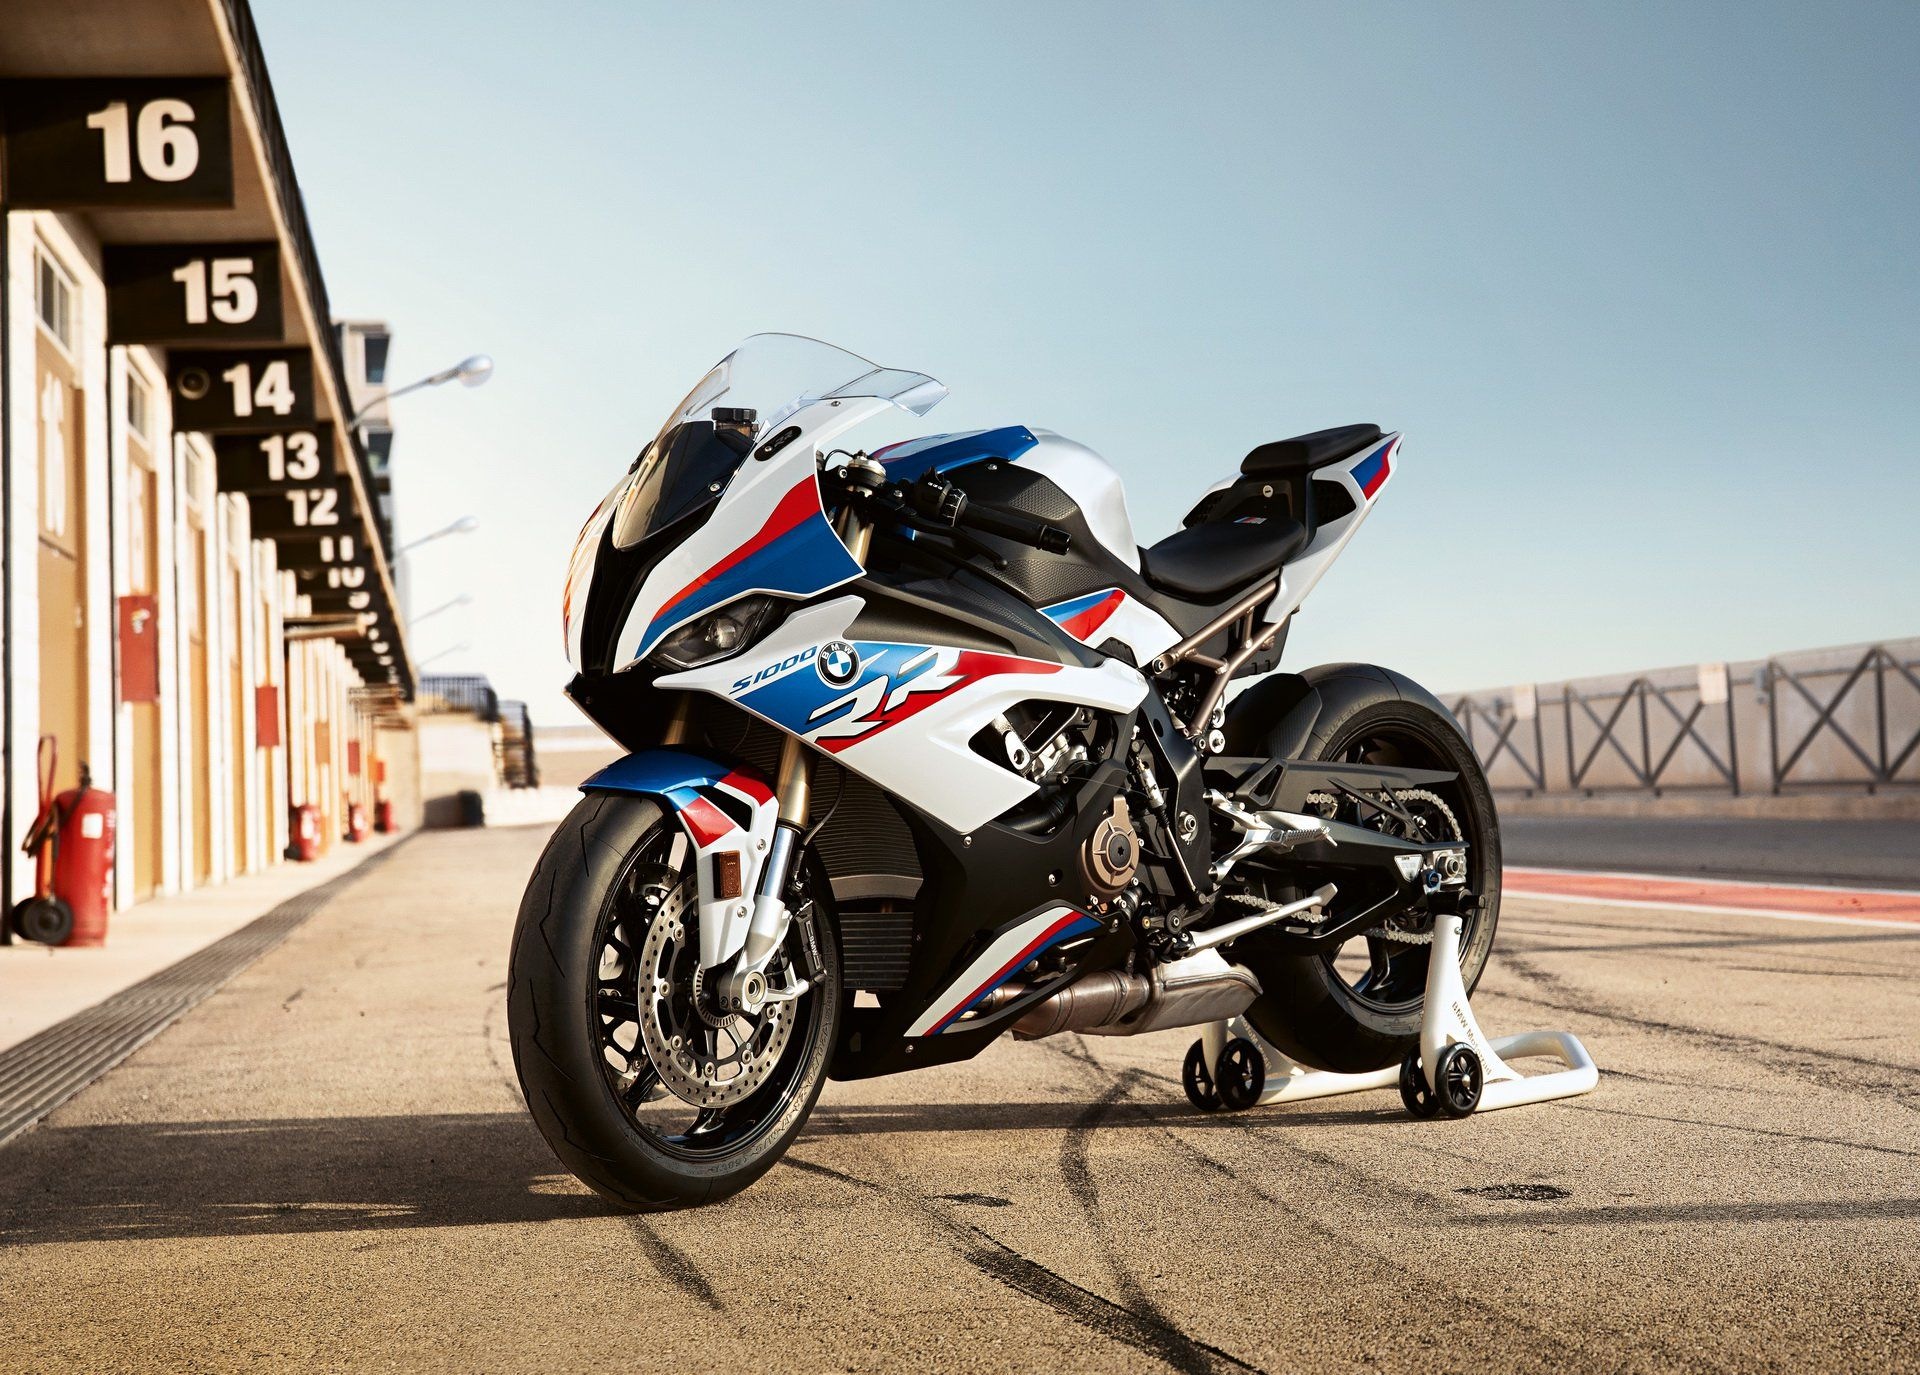 Bmw Sport Bike >> You Can Now Fit Your Bmw Sport Bike With M Performance Parts Cars